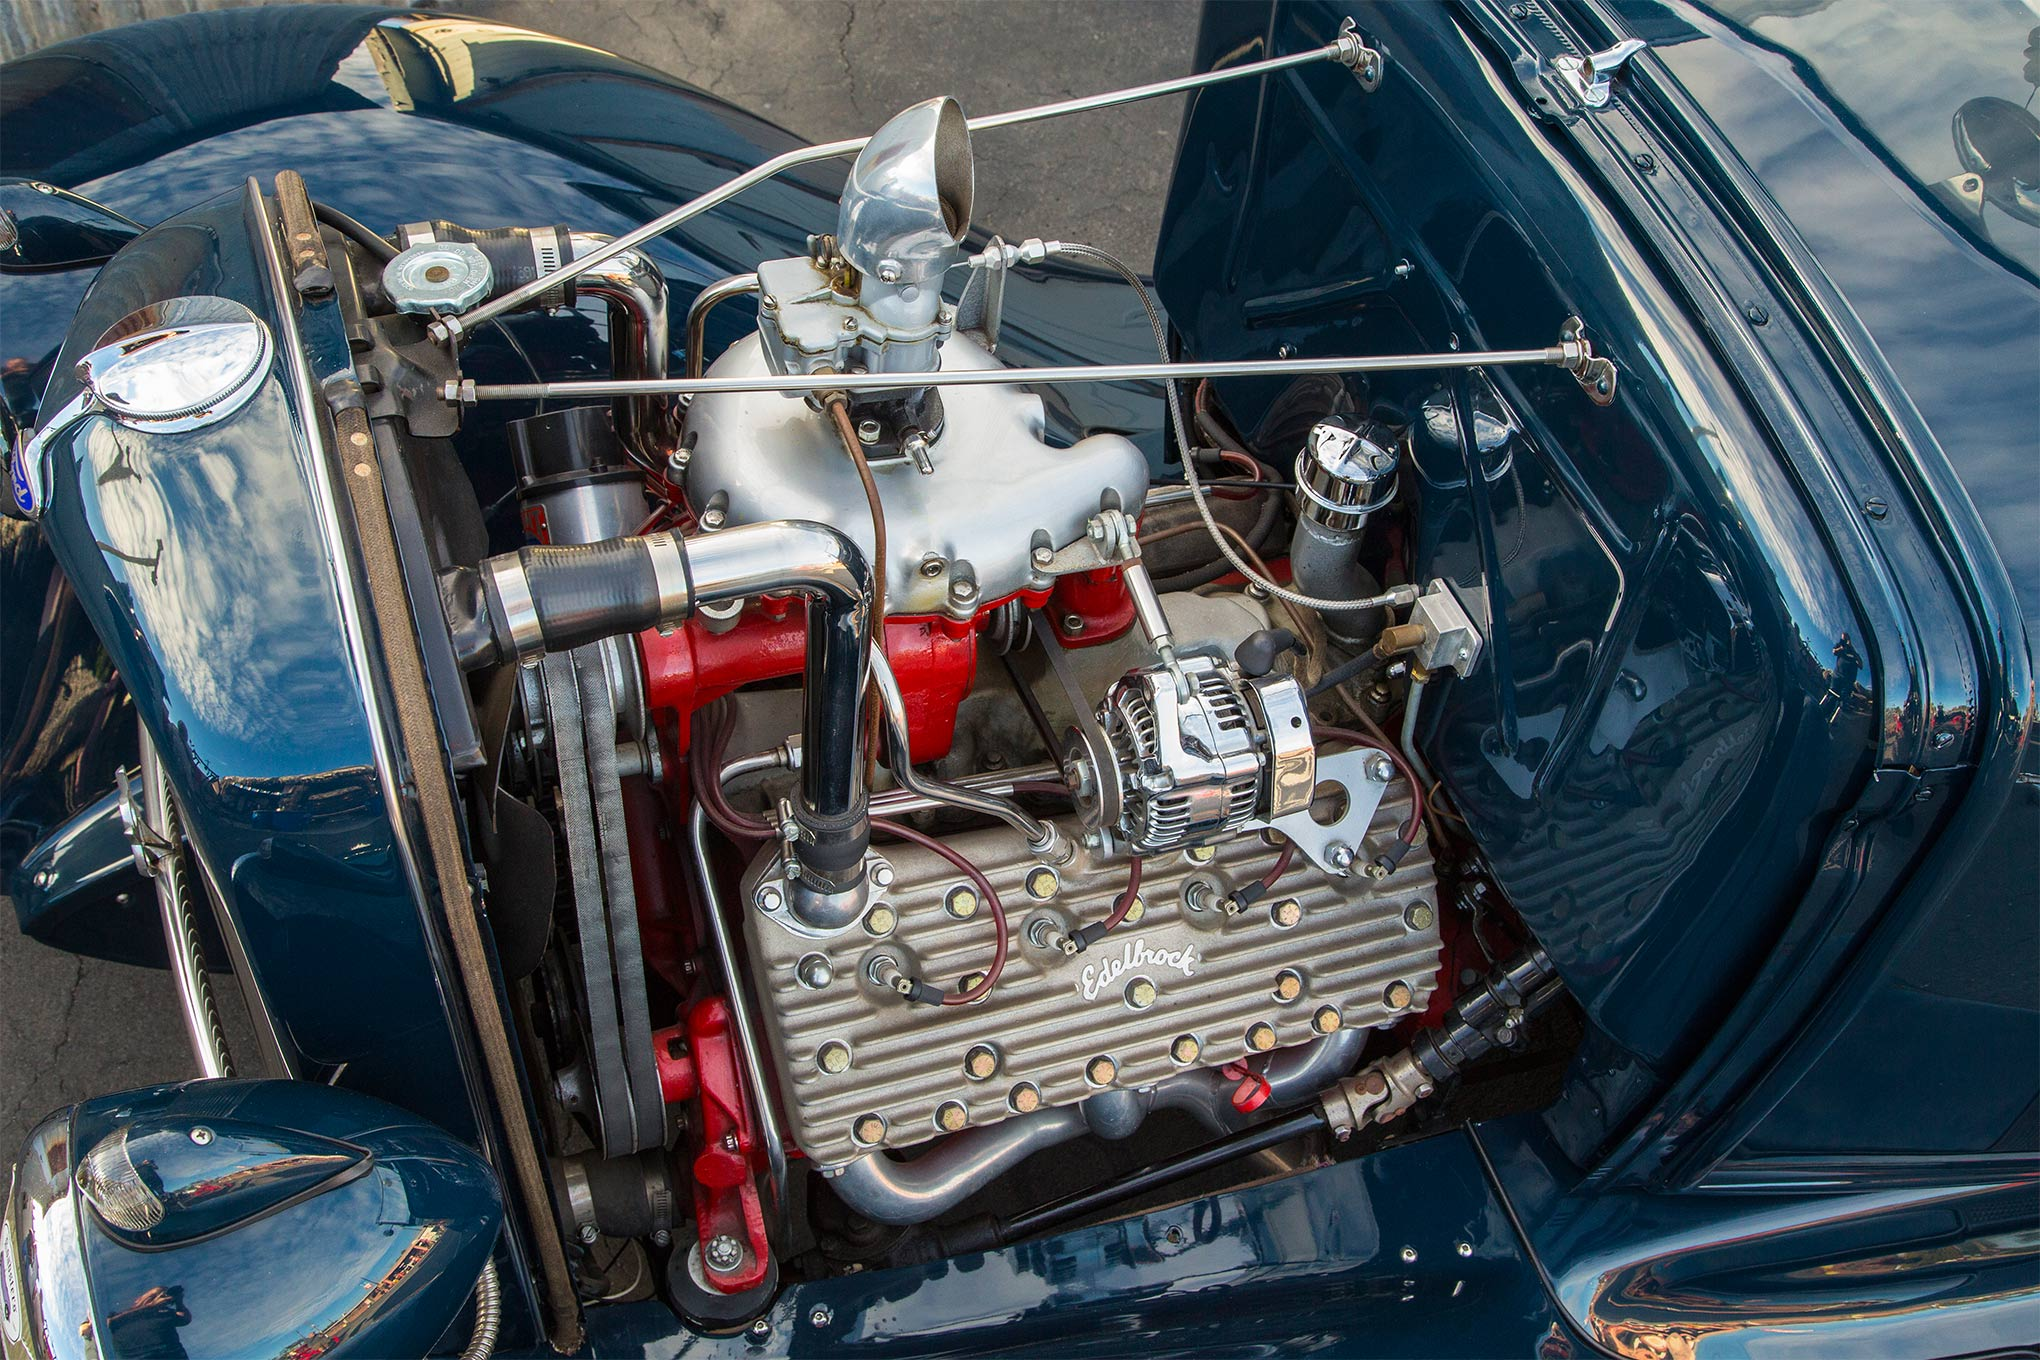 When it was time to get the supercharger off the shelf, Steve mounted it on a '50 Merc 8BA flathead backed by a '50 Merc three-speed overdrive transmission. The centrifugal blower is mounted on a '36 Ford intake manifold and topped by a Stromberg 97.